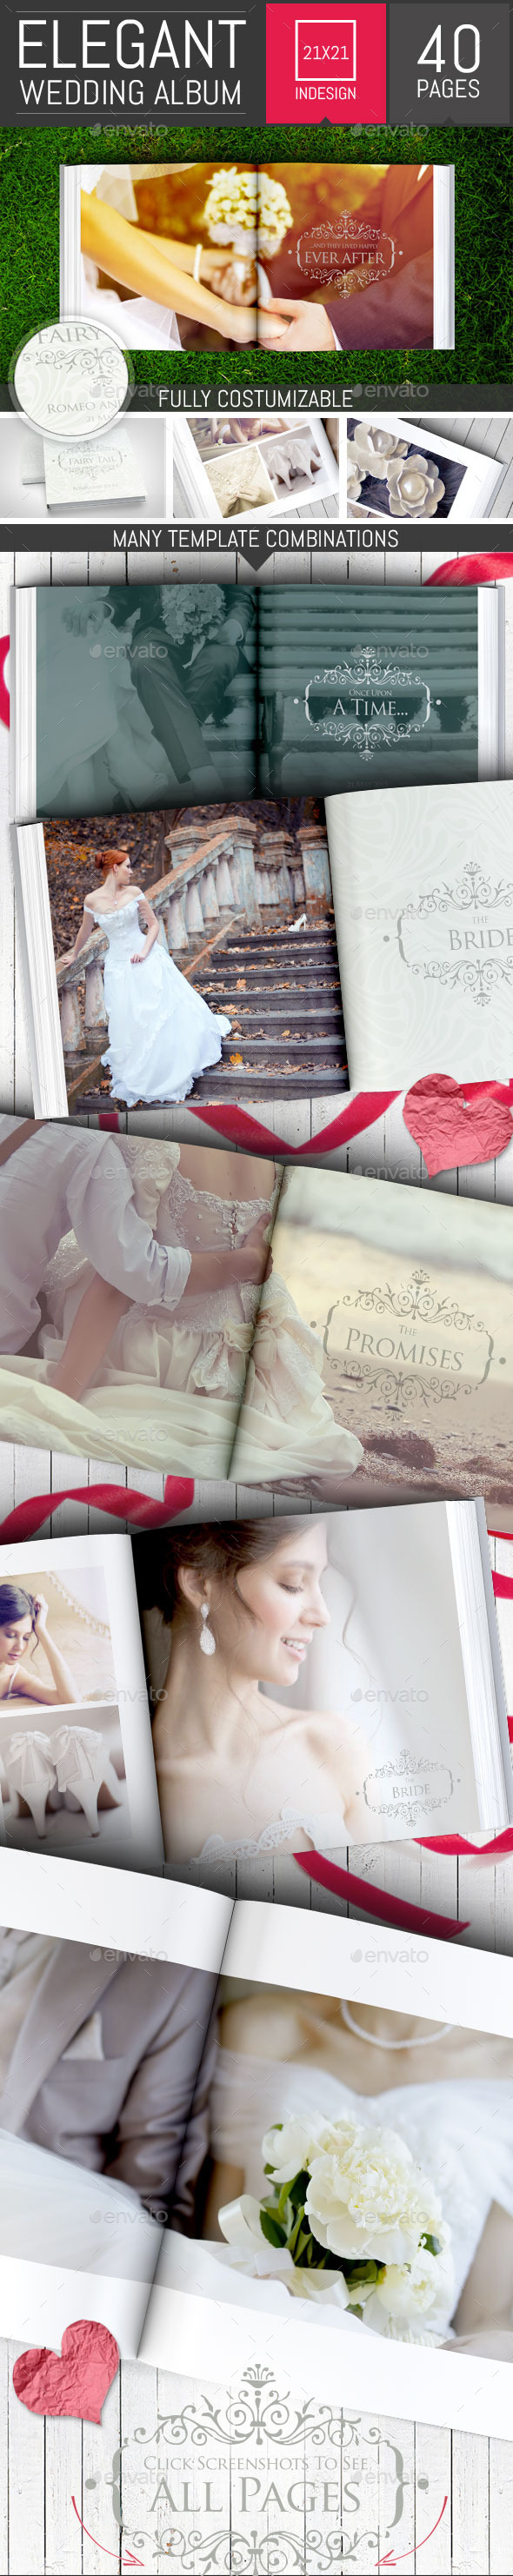 elegant wedding photo albums